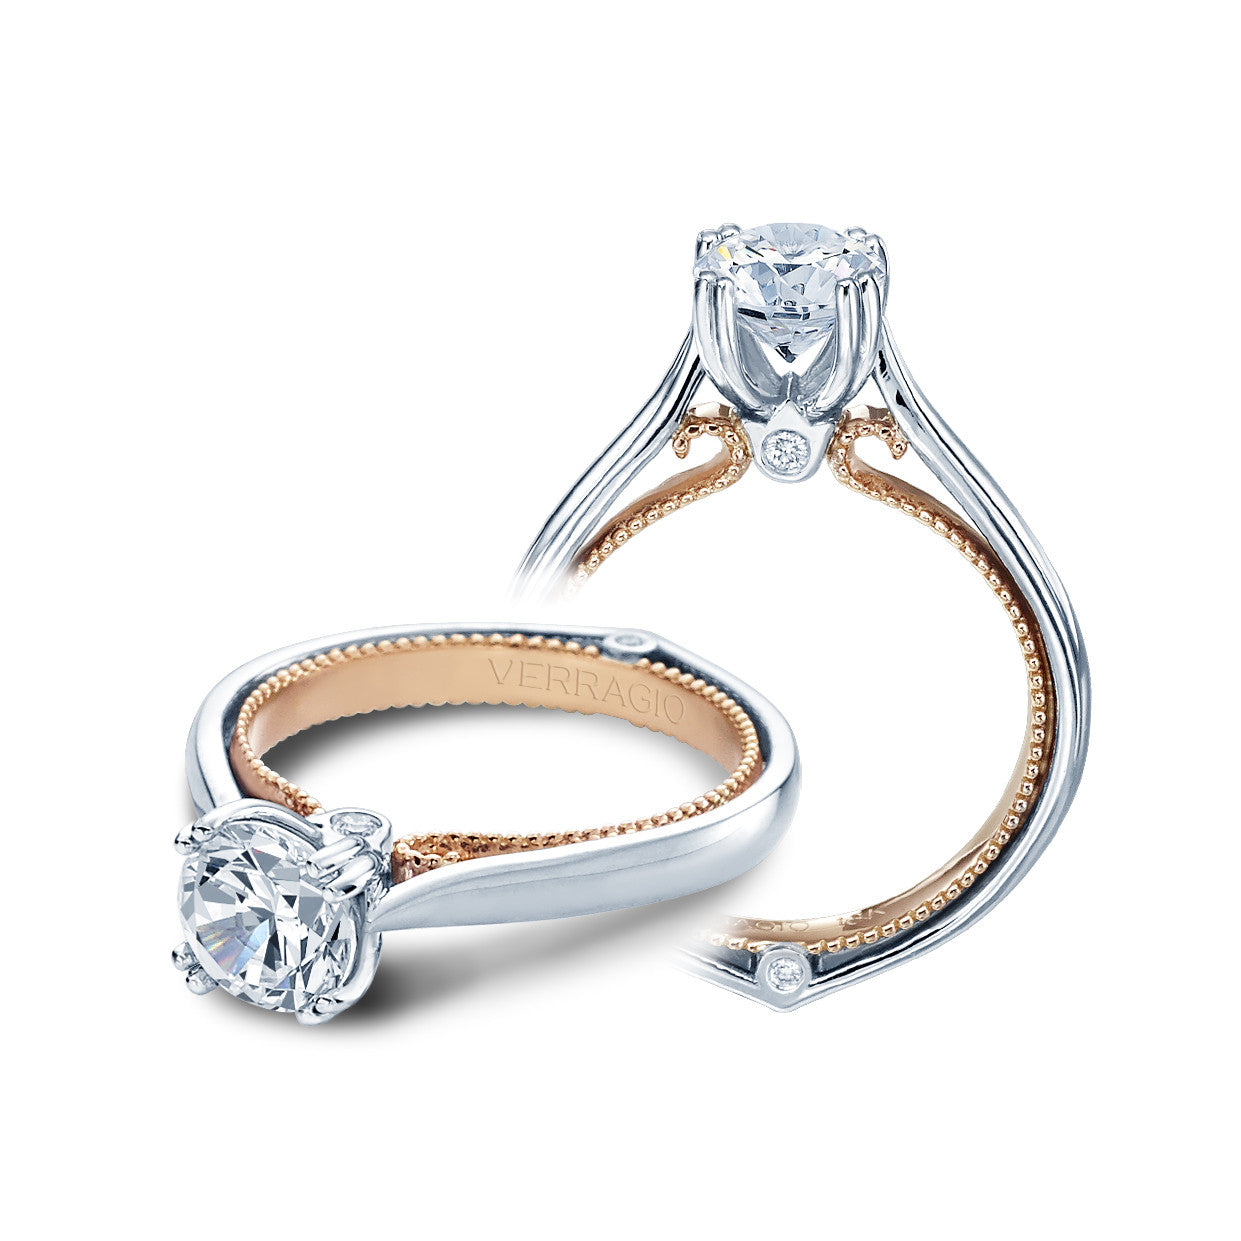 Verragio Couture 0418R-2T Engagement Ring